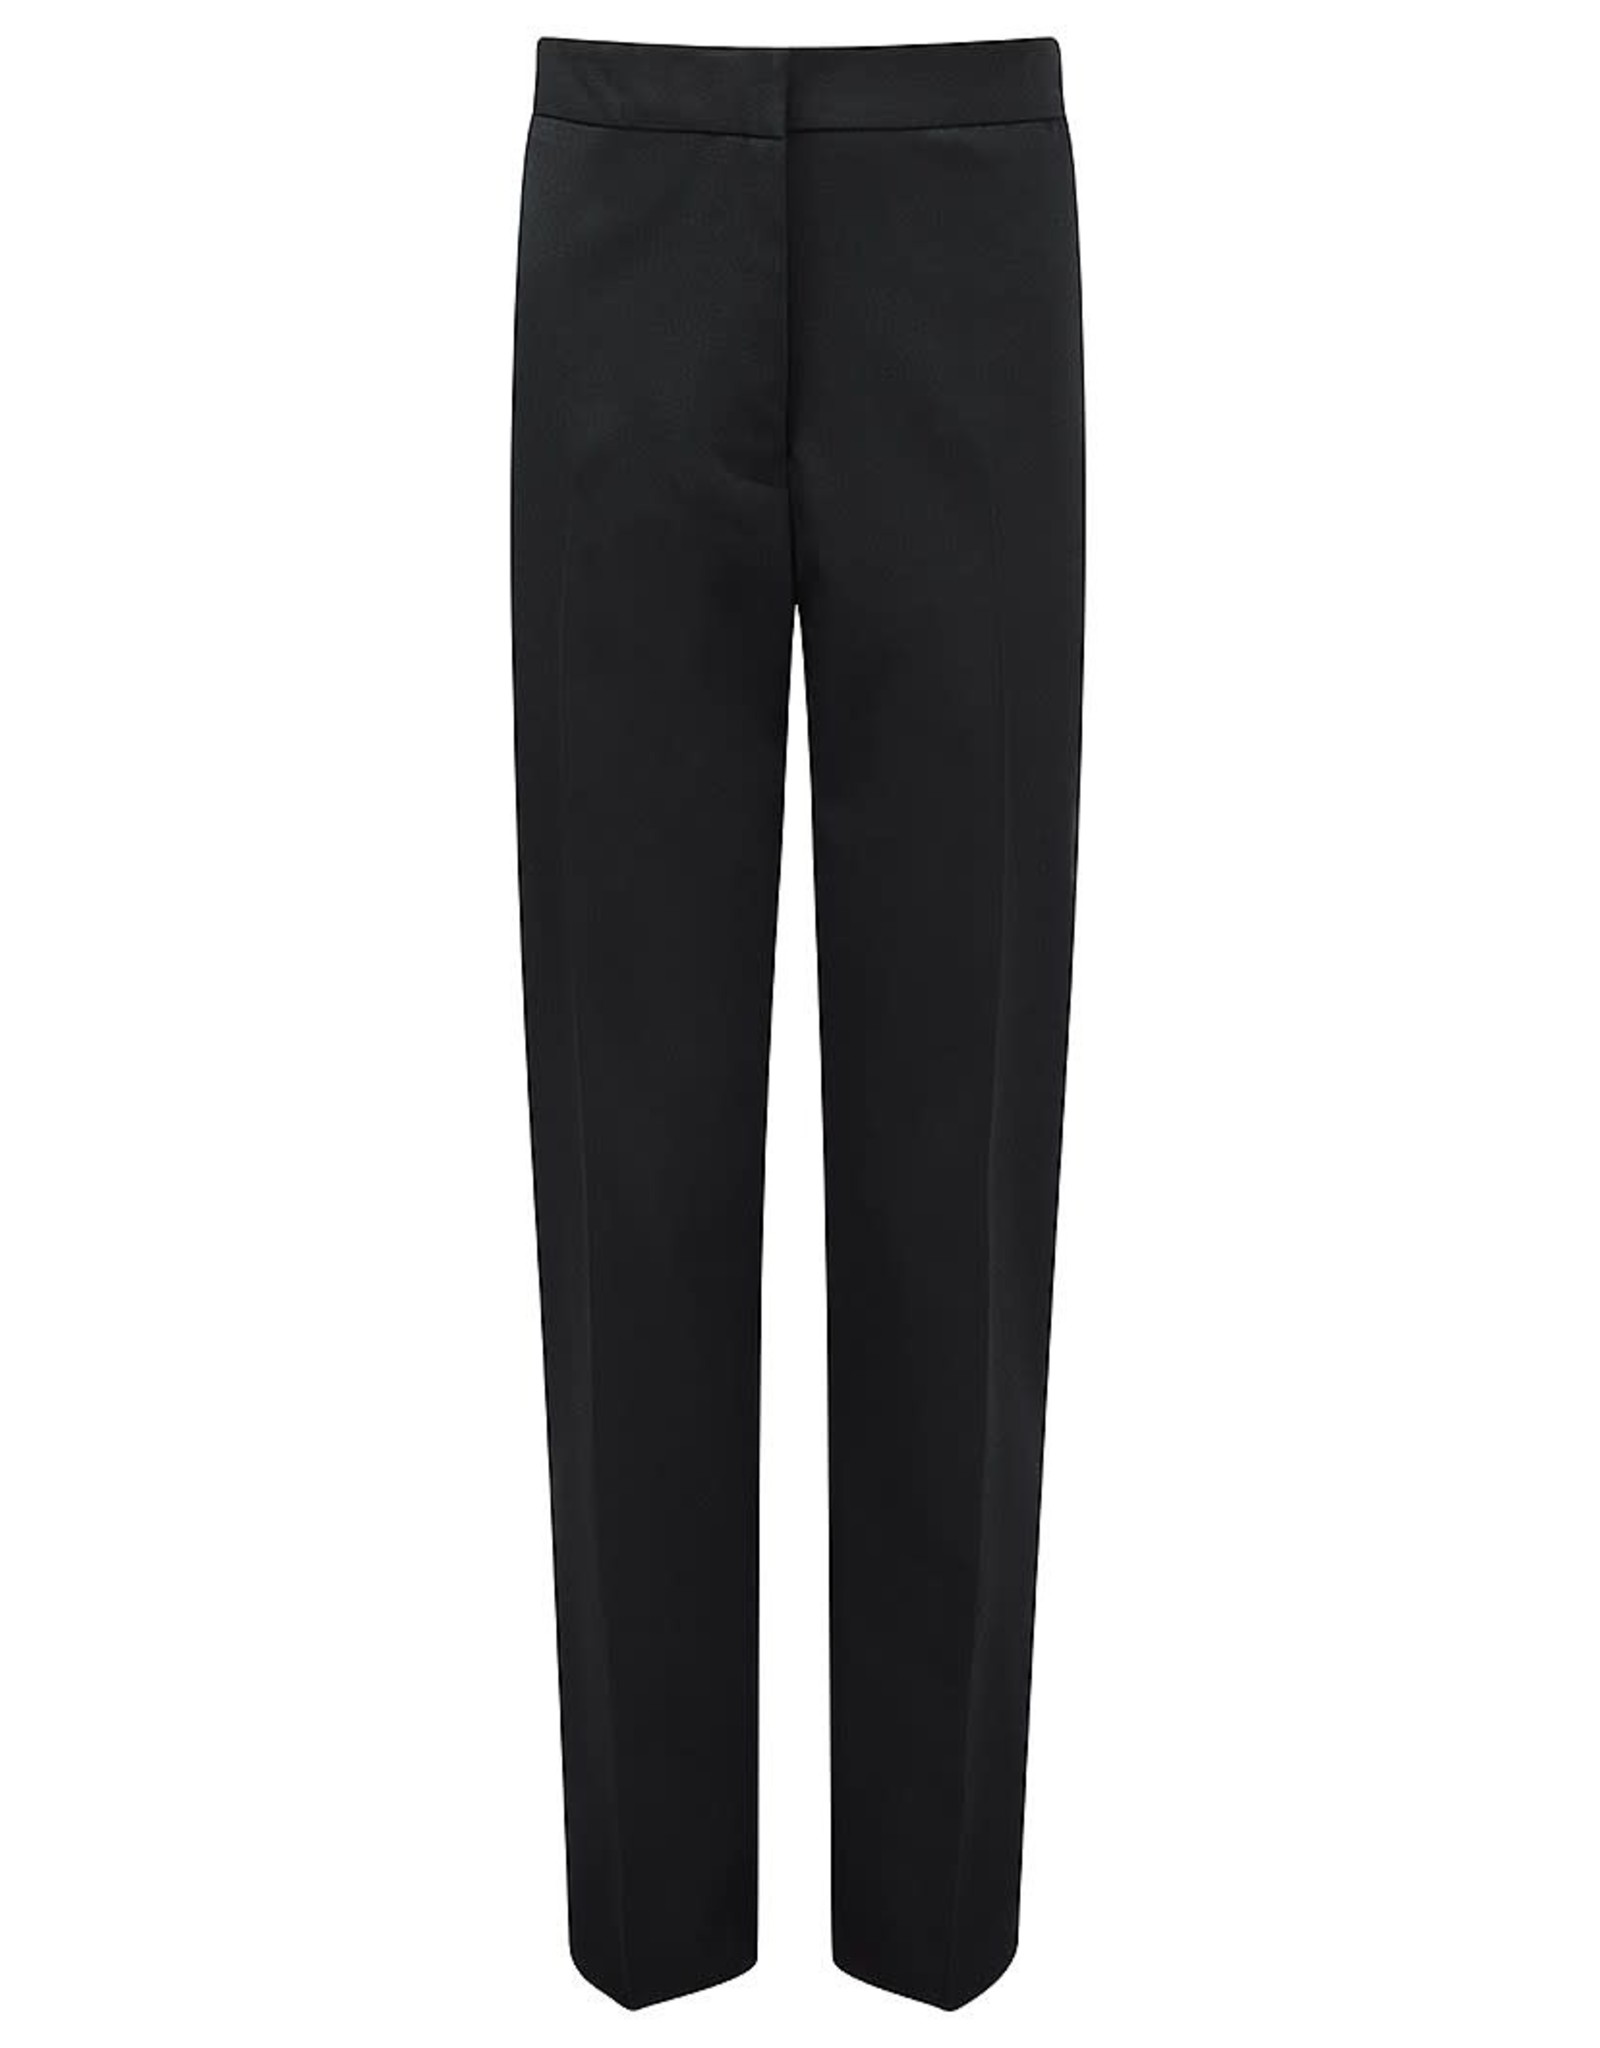 ASPIRE Girls Slimfit Trousers Adult Size- Nicholas Chamberlaine School